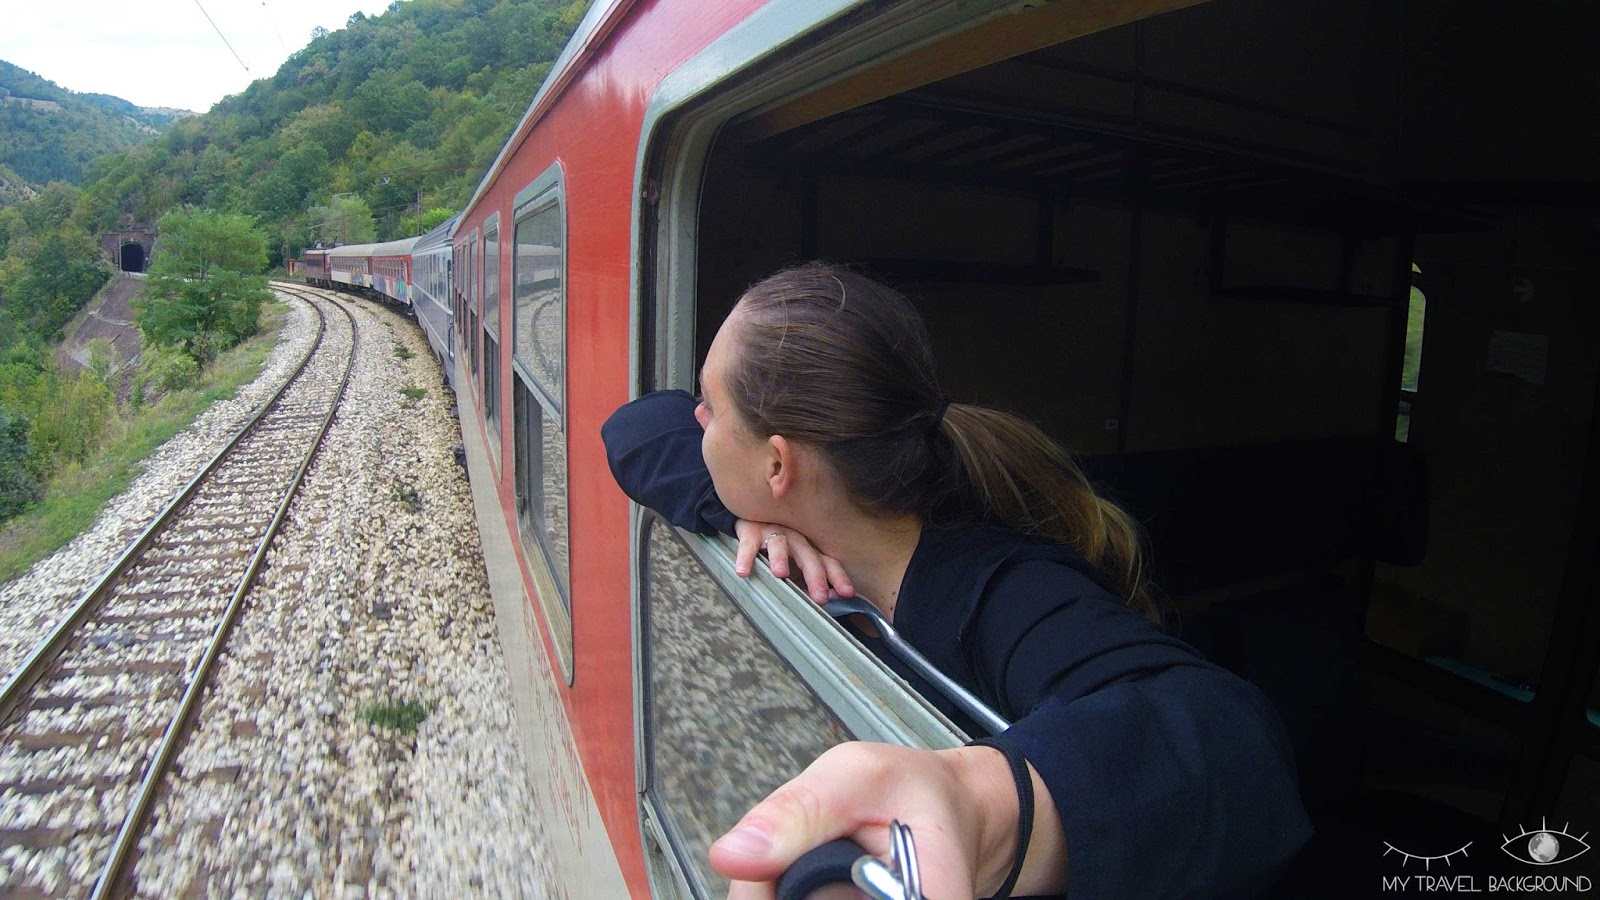 My Travel Background : mon Road Trip en Europe en train avec le pass Interrail, itinéraire, budget & co ! - En train entre la Bulgarie et la Roumanie